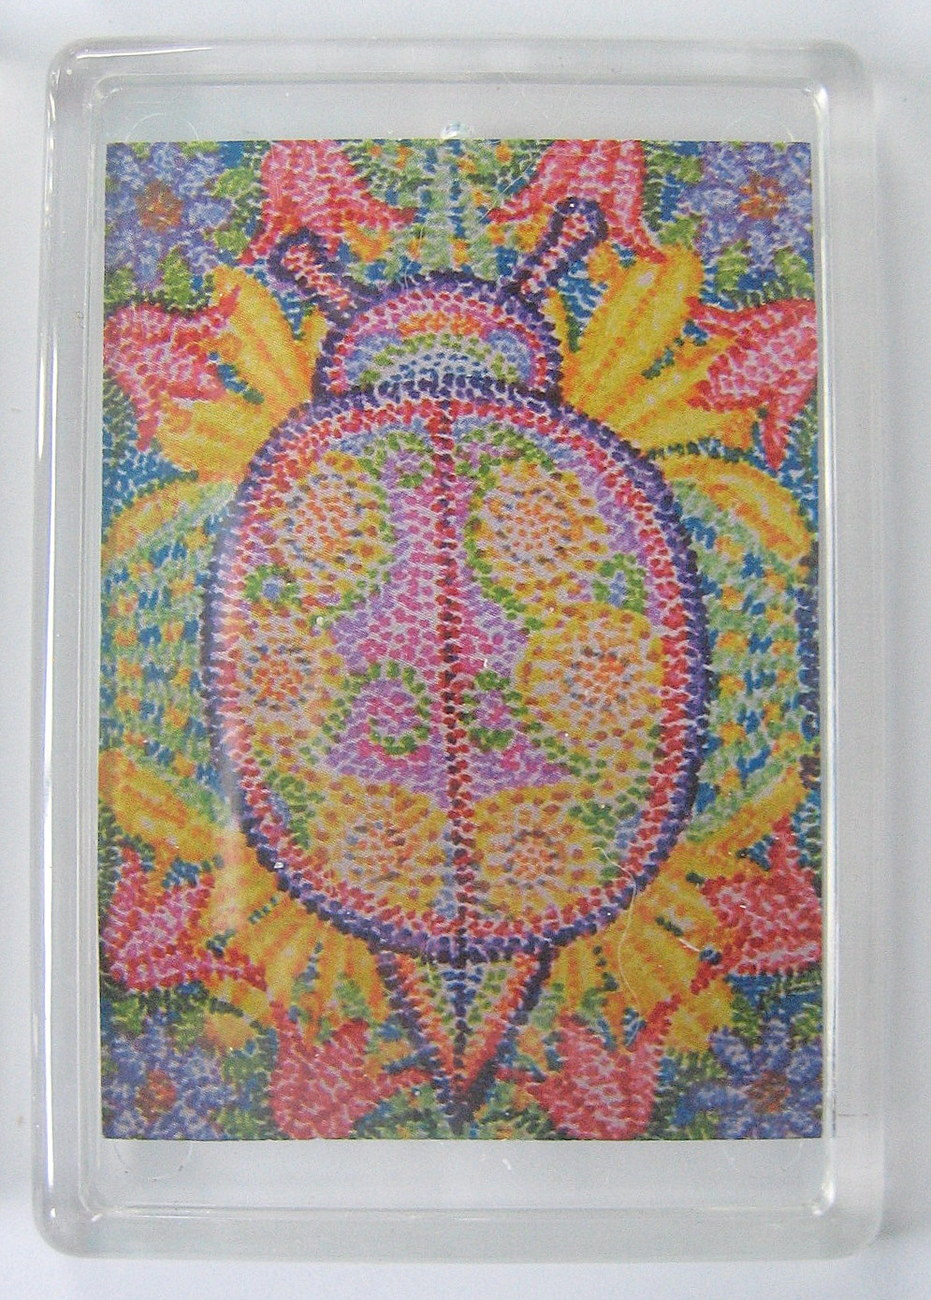 Psychedelic lady bug magnet